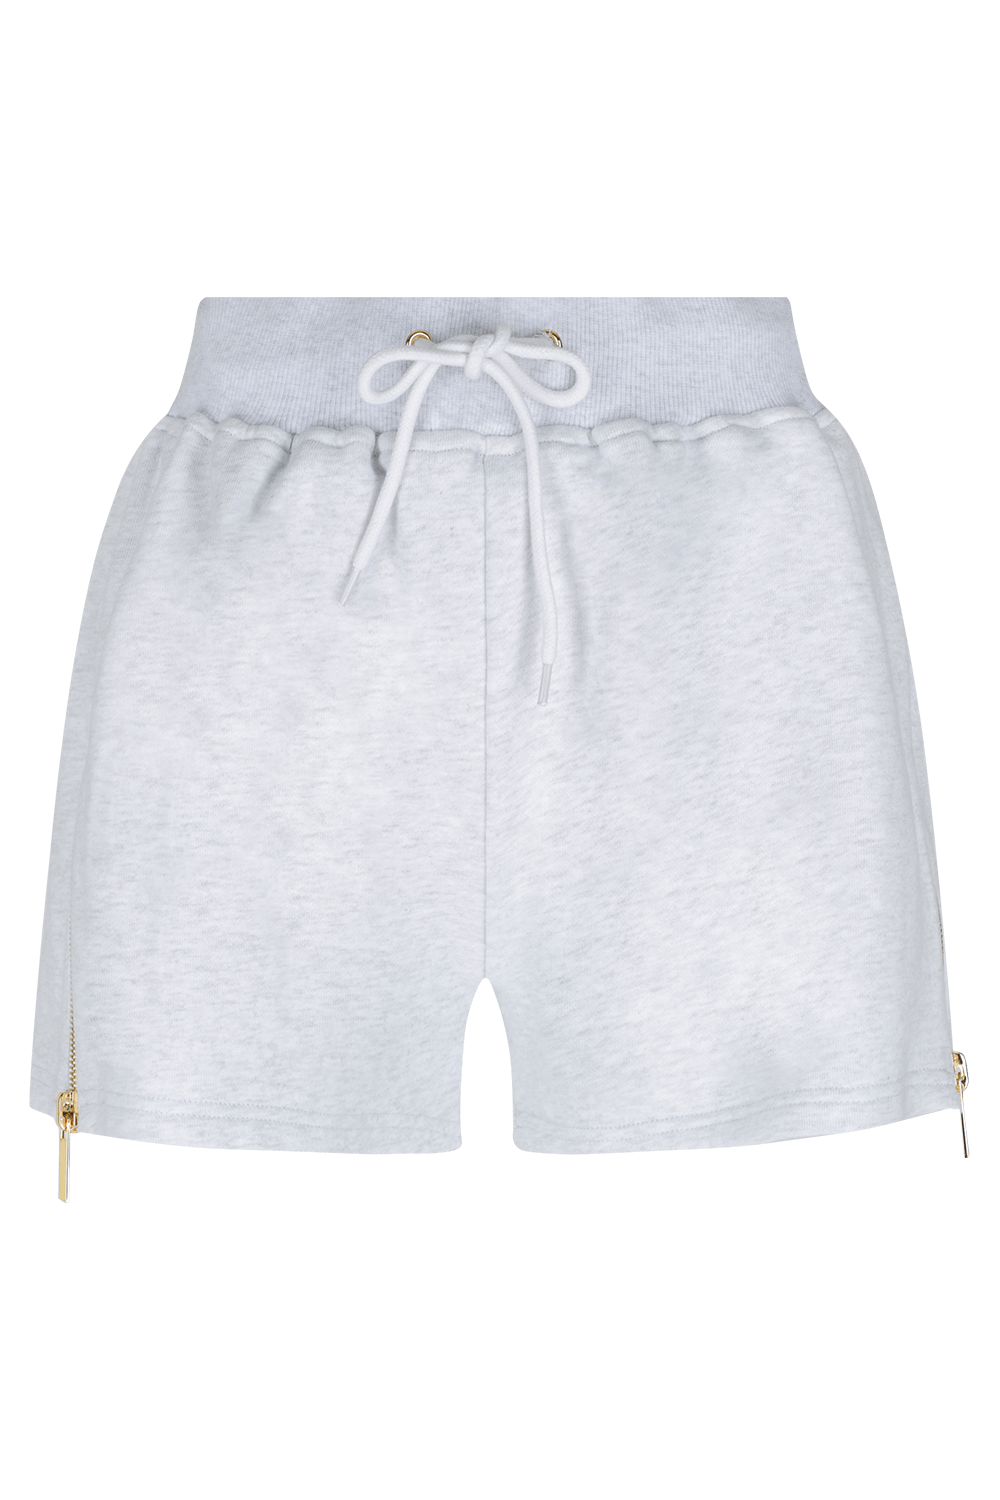 HATE ME Shorts - GRY/GLD | HAUS OF SONG